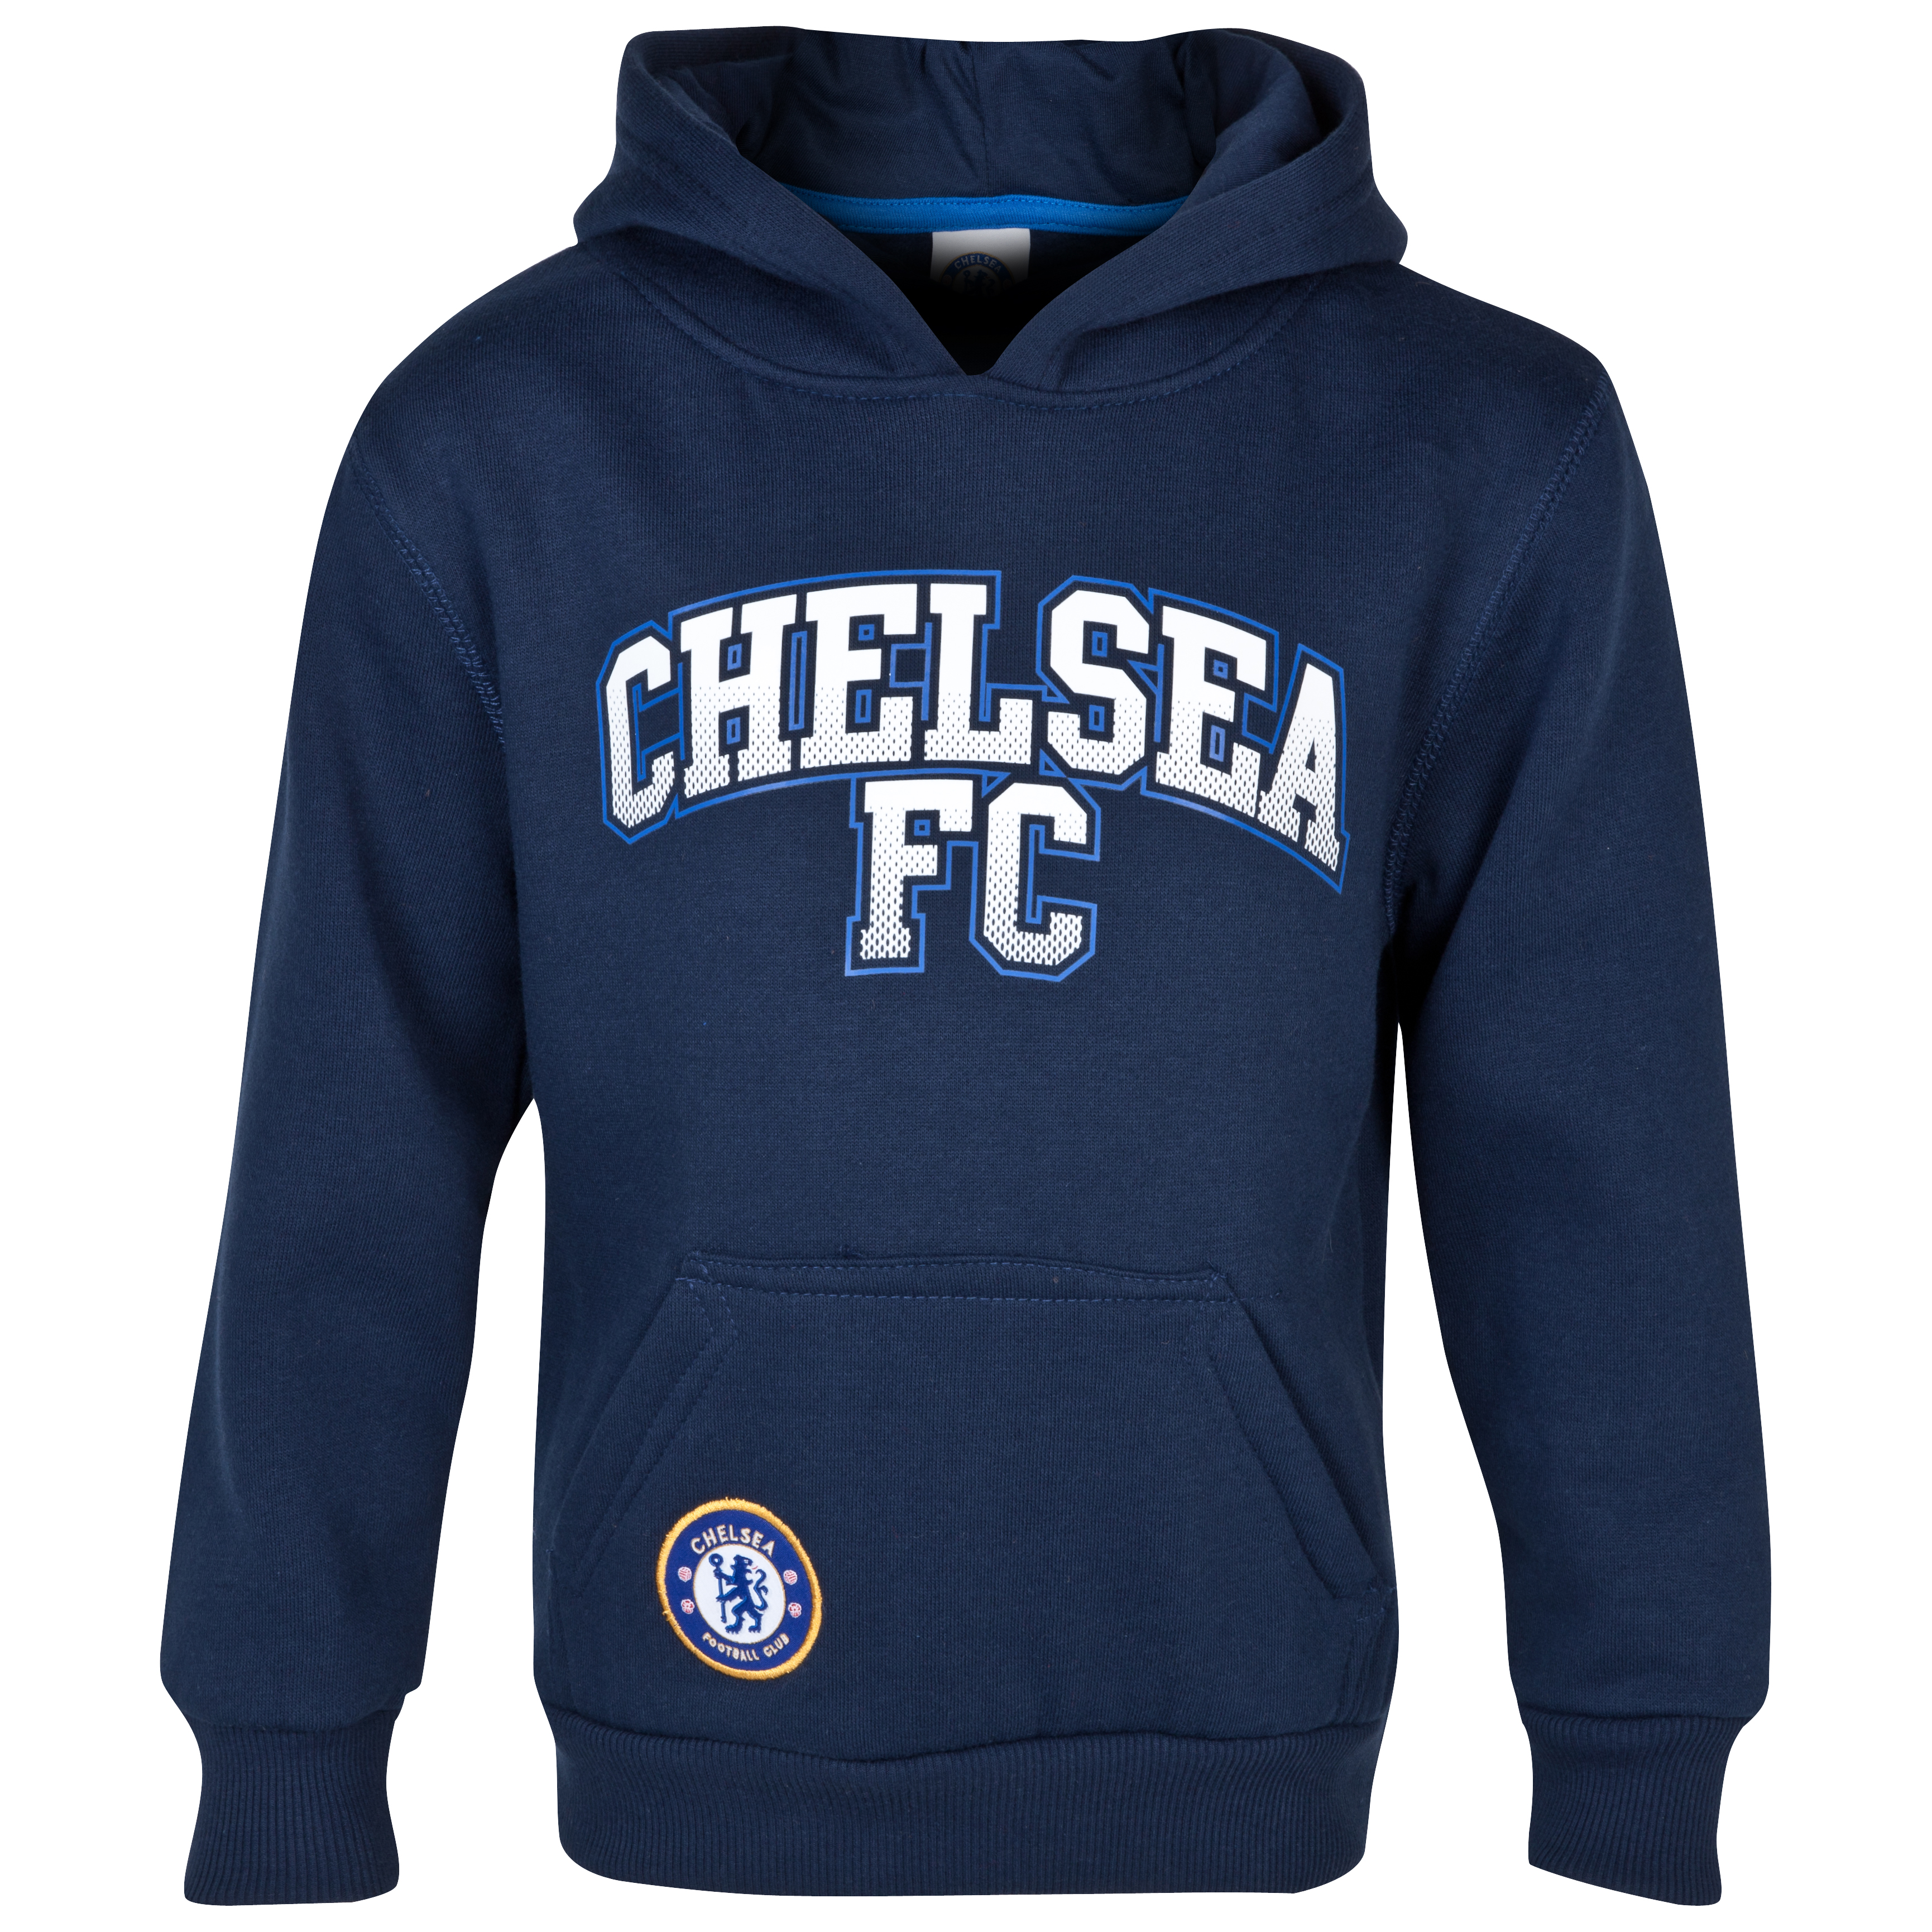 Chelsea Core Graphic Hoody - Navy - Infant Boys